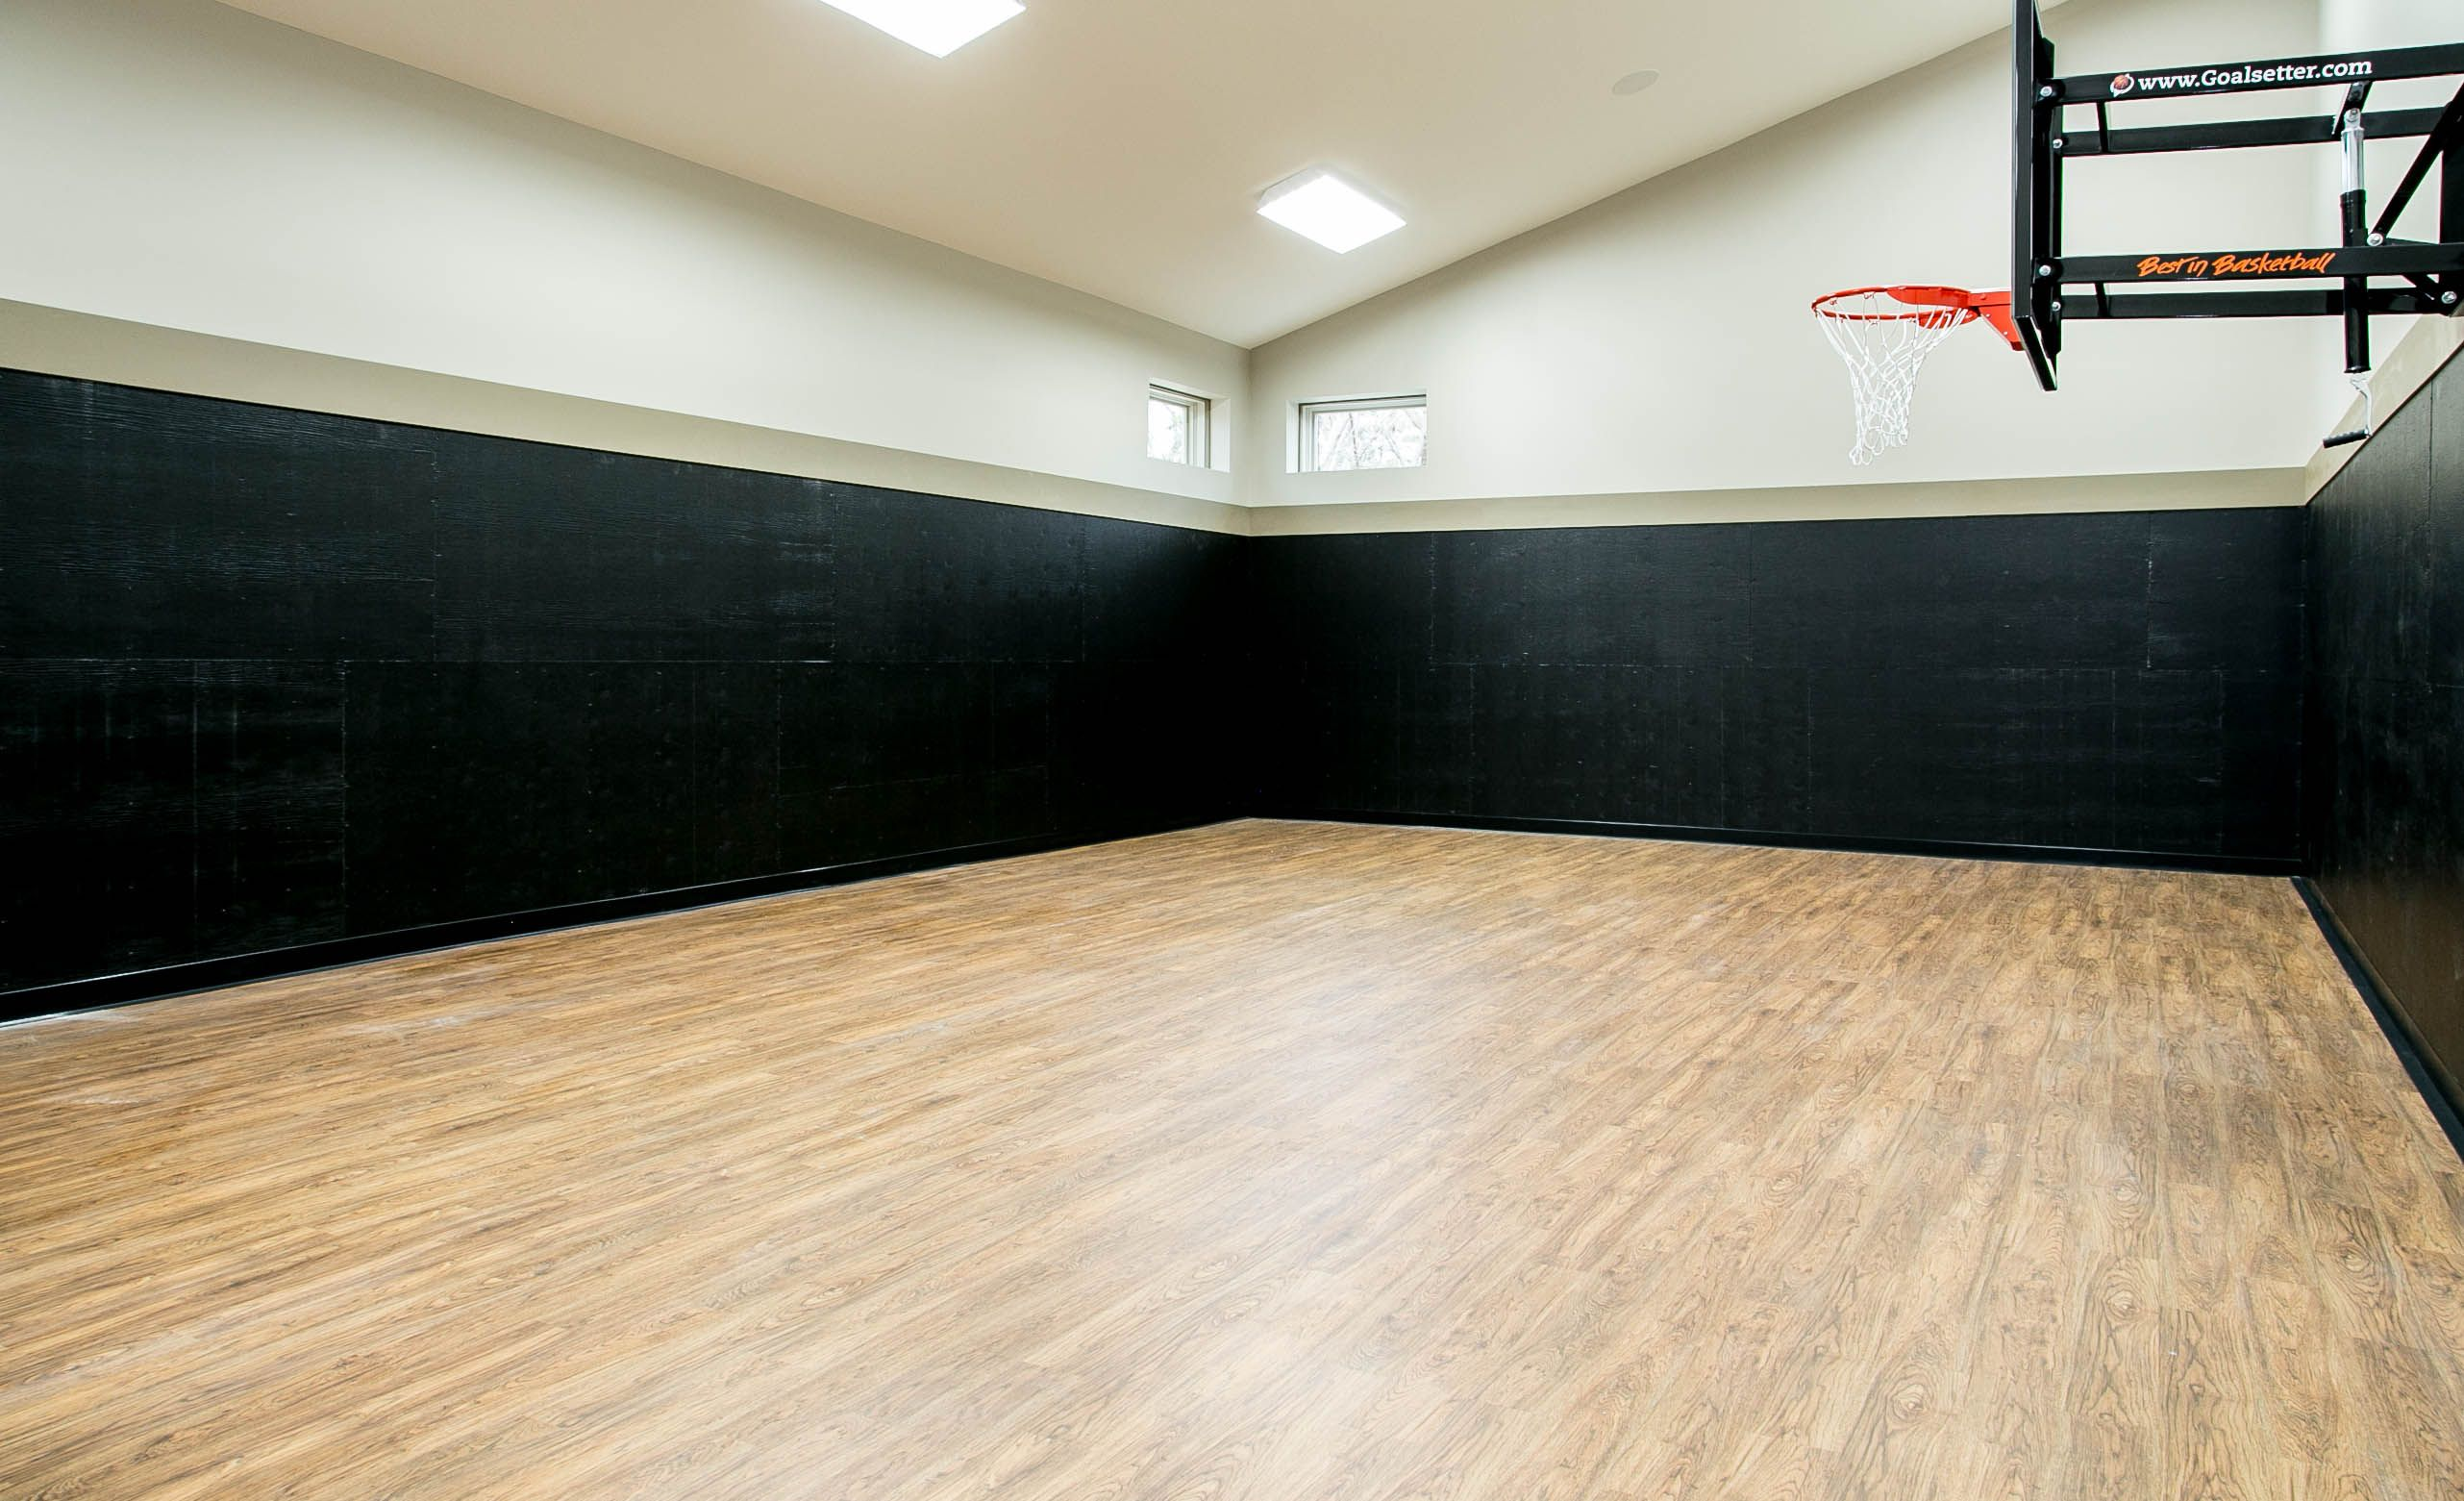 Check Out This Great Space You Can Play Basketball Hockey Volleyball You Name It It Is Open And Spacious Enough For Jus Dance Rooms Games To Play Spacious